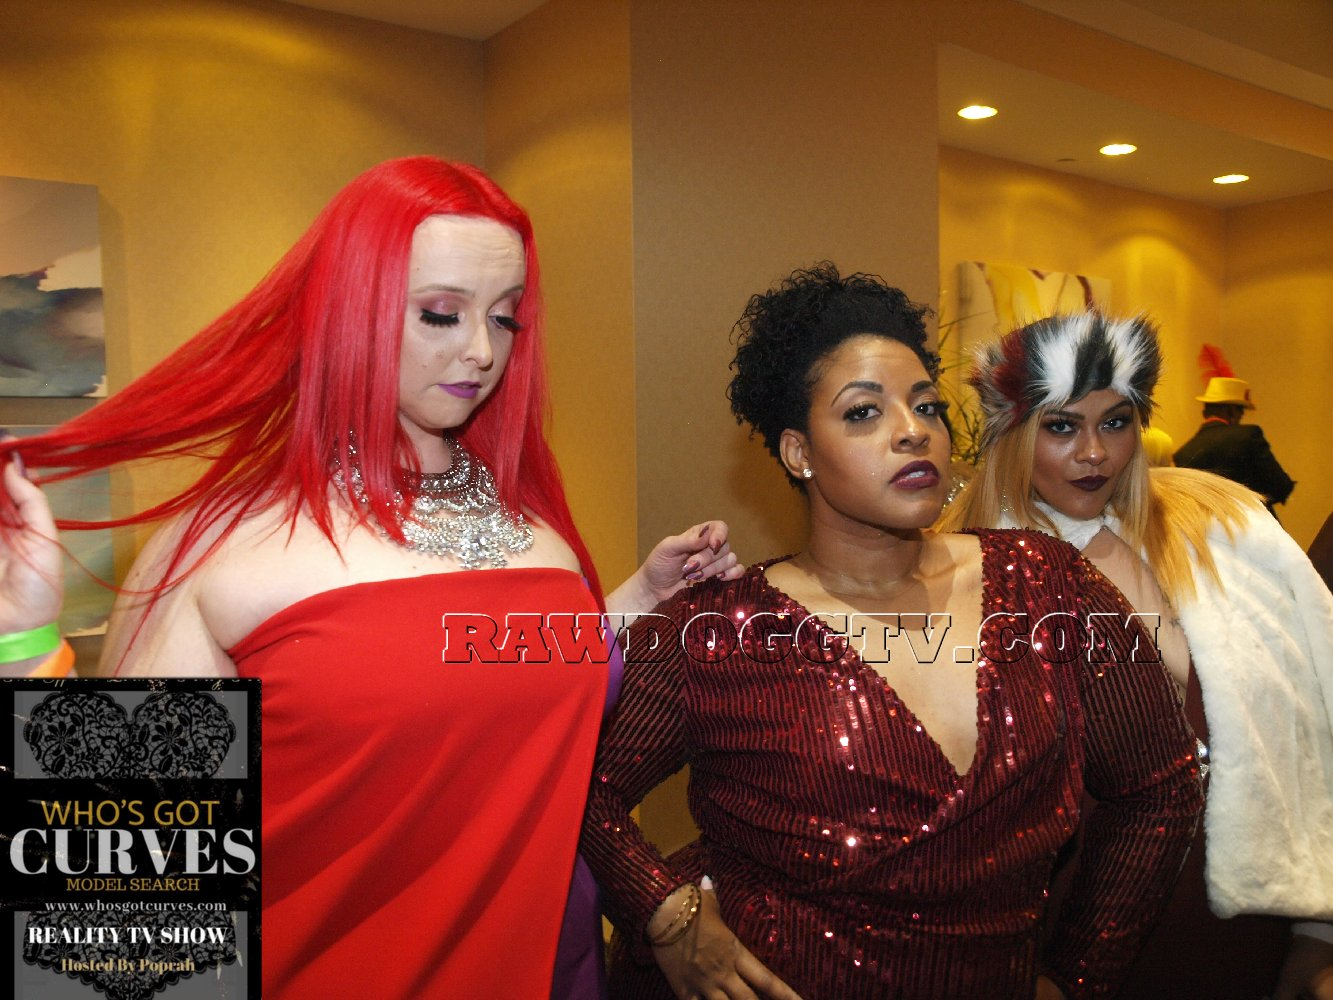 Whos Got Curves REALITY TV SHOW Atlanta Photos-HOLLYWOOD SOUTH PRESENTS httpsrawdoggtv (8)